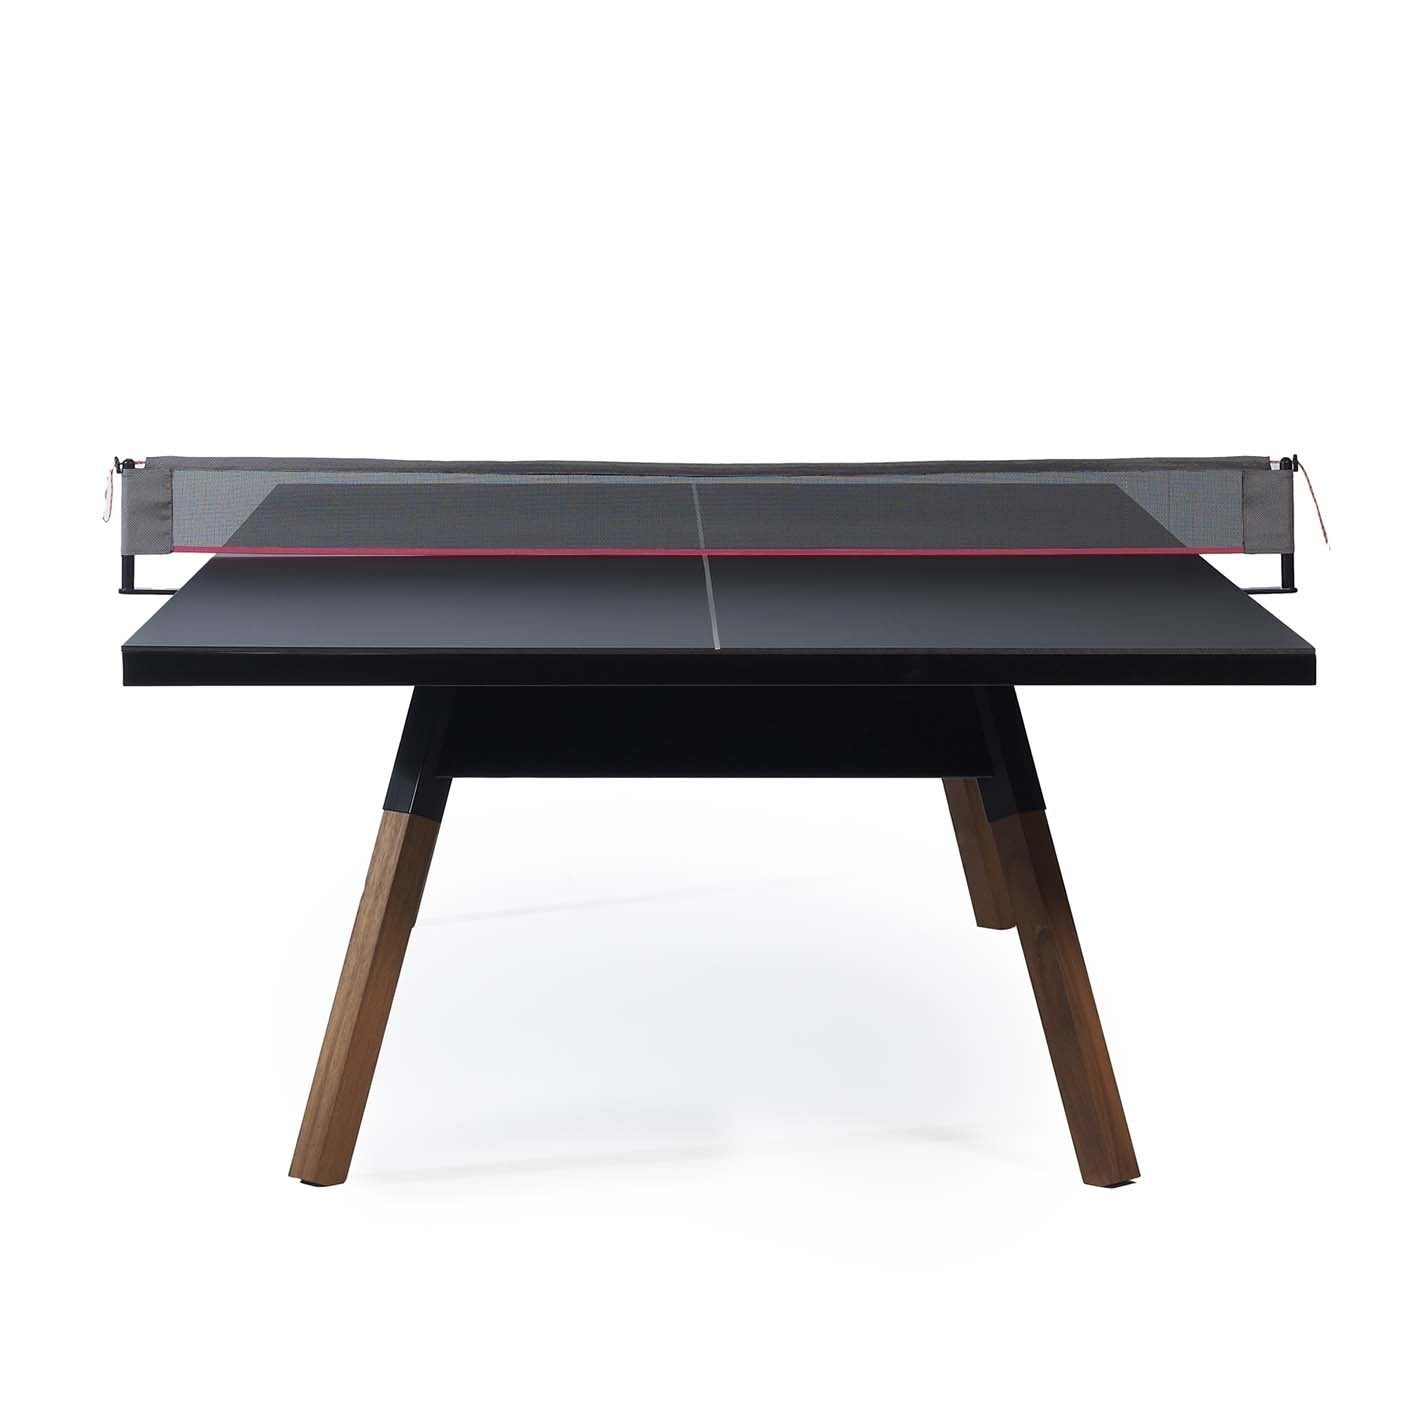 You & Me Table tennis table 180